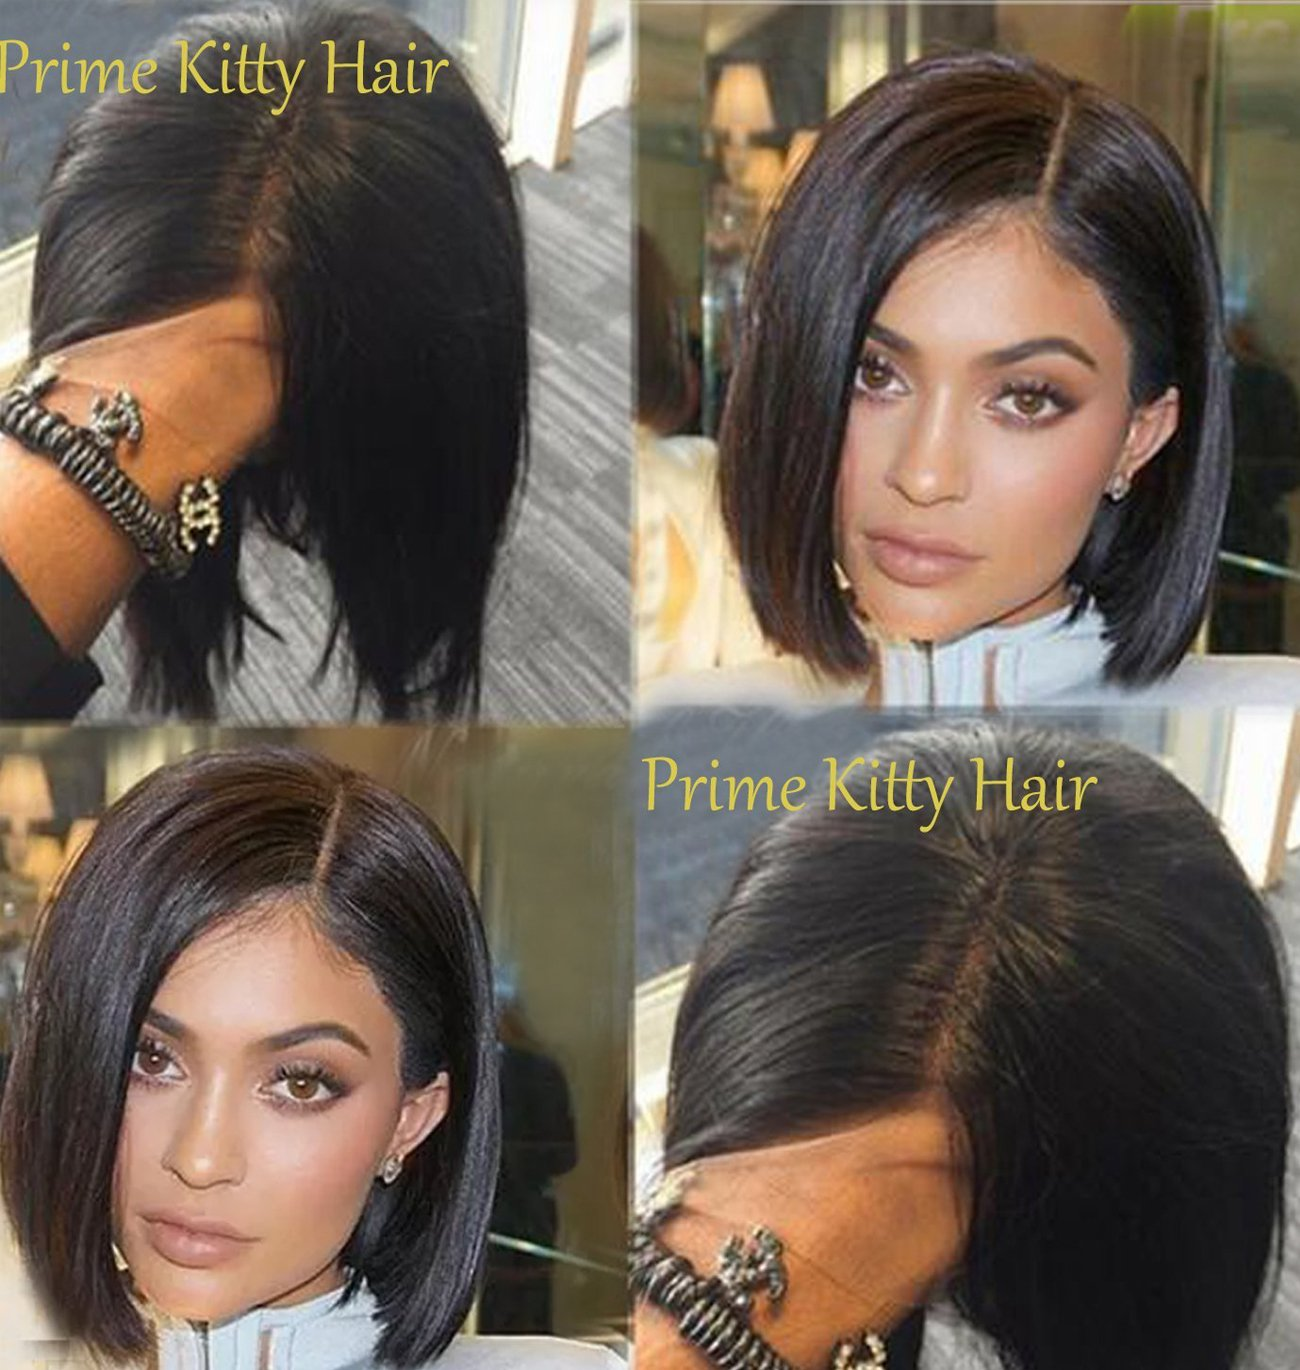 Human Hair Wigs for White Women Human Hair Wigs for Black Women 150% Density Glueless Full Lace Wigs for Updo Ponytail Any Part Style Full Hand Made Brazilian Remy Virgin Human Hair Wigs 14'' Bob Wig